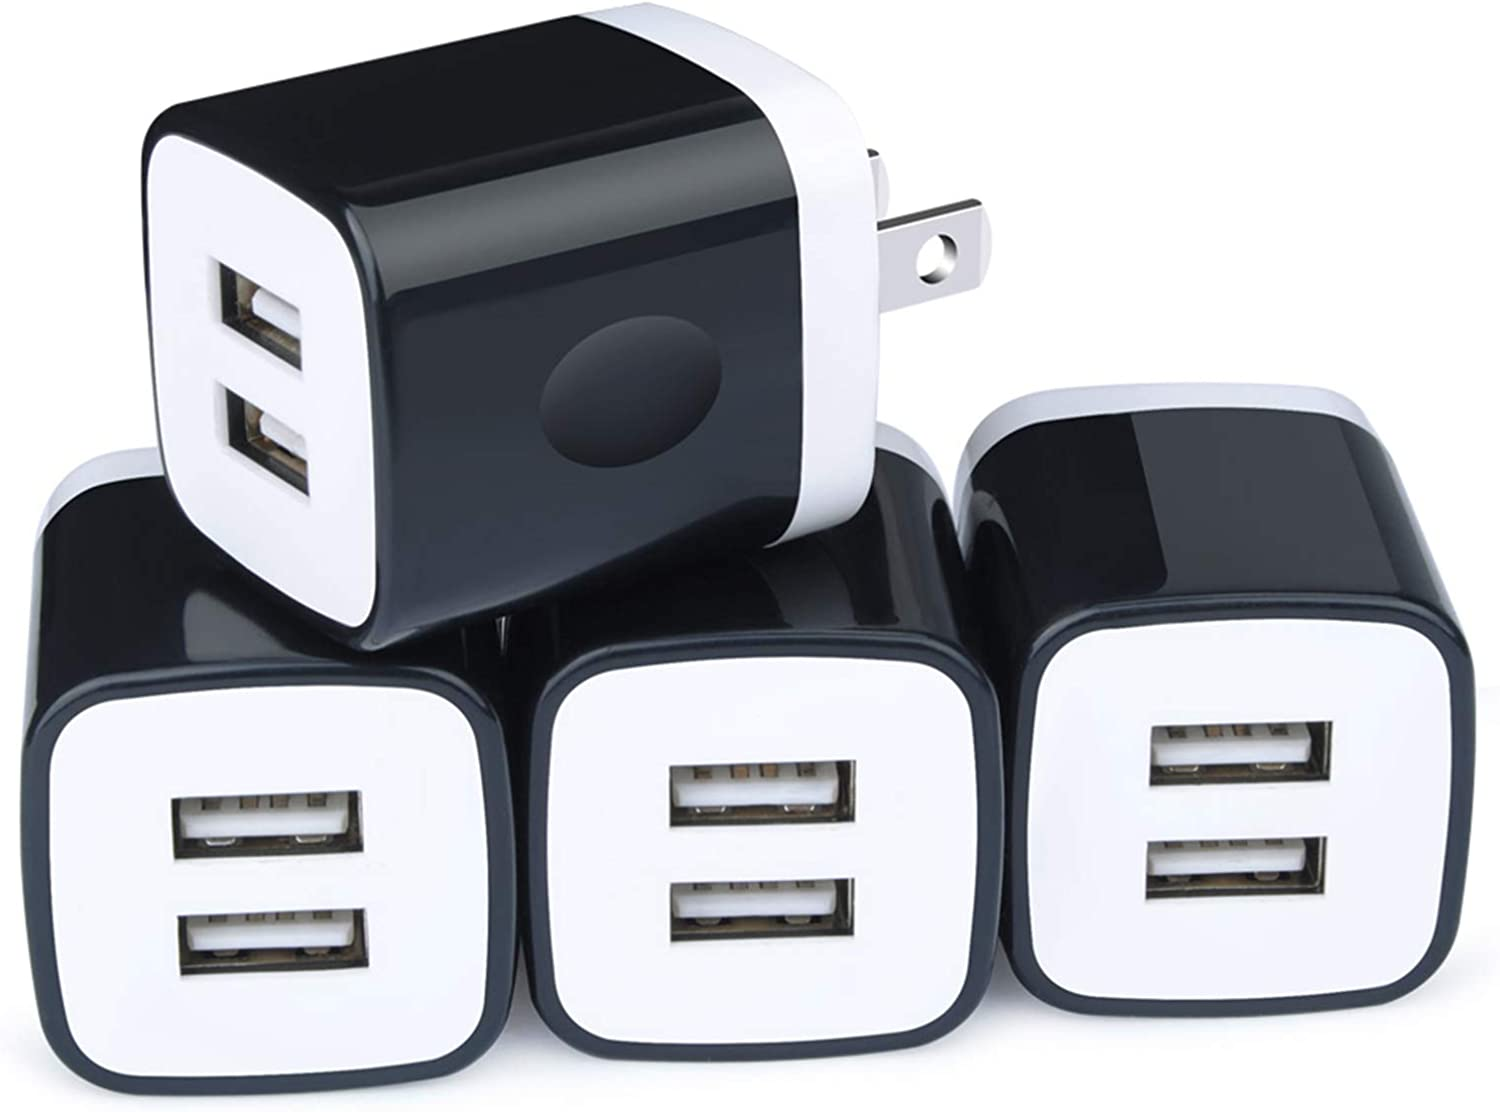 USB Wall Charger Brick, 4-Pack 2.1A/5V Dual USB Plug Power Adapter Charger Box Charging Cube Heads for Replacement for iPhone Xs/XS Max/XR/X/8/7/6/Plus, Samsung Galaxy S8 S7 S6 Edge, LG, Moto, HTC